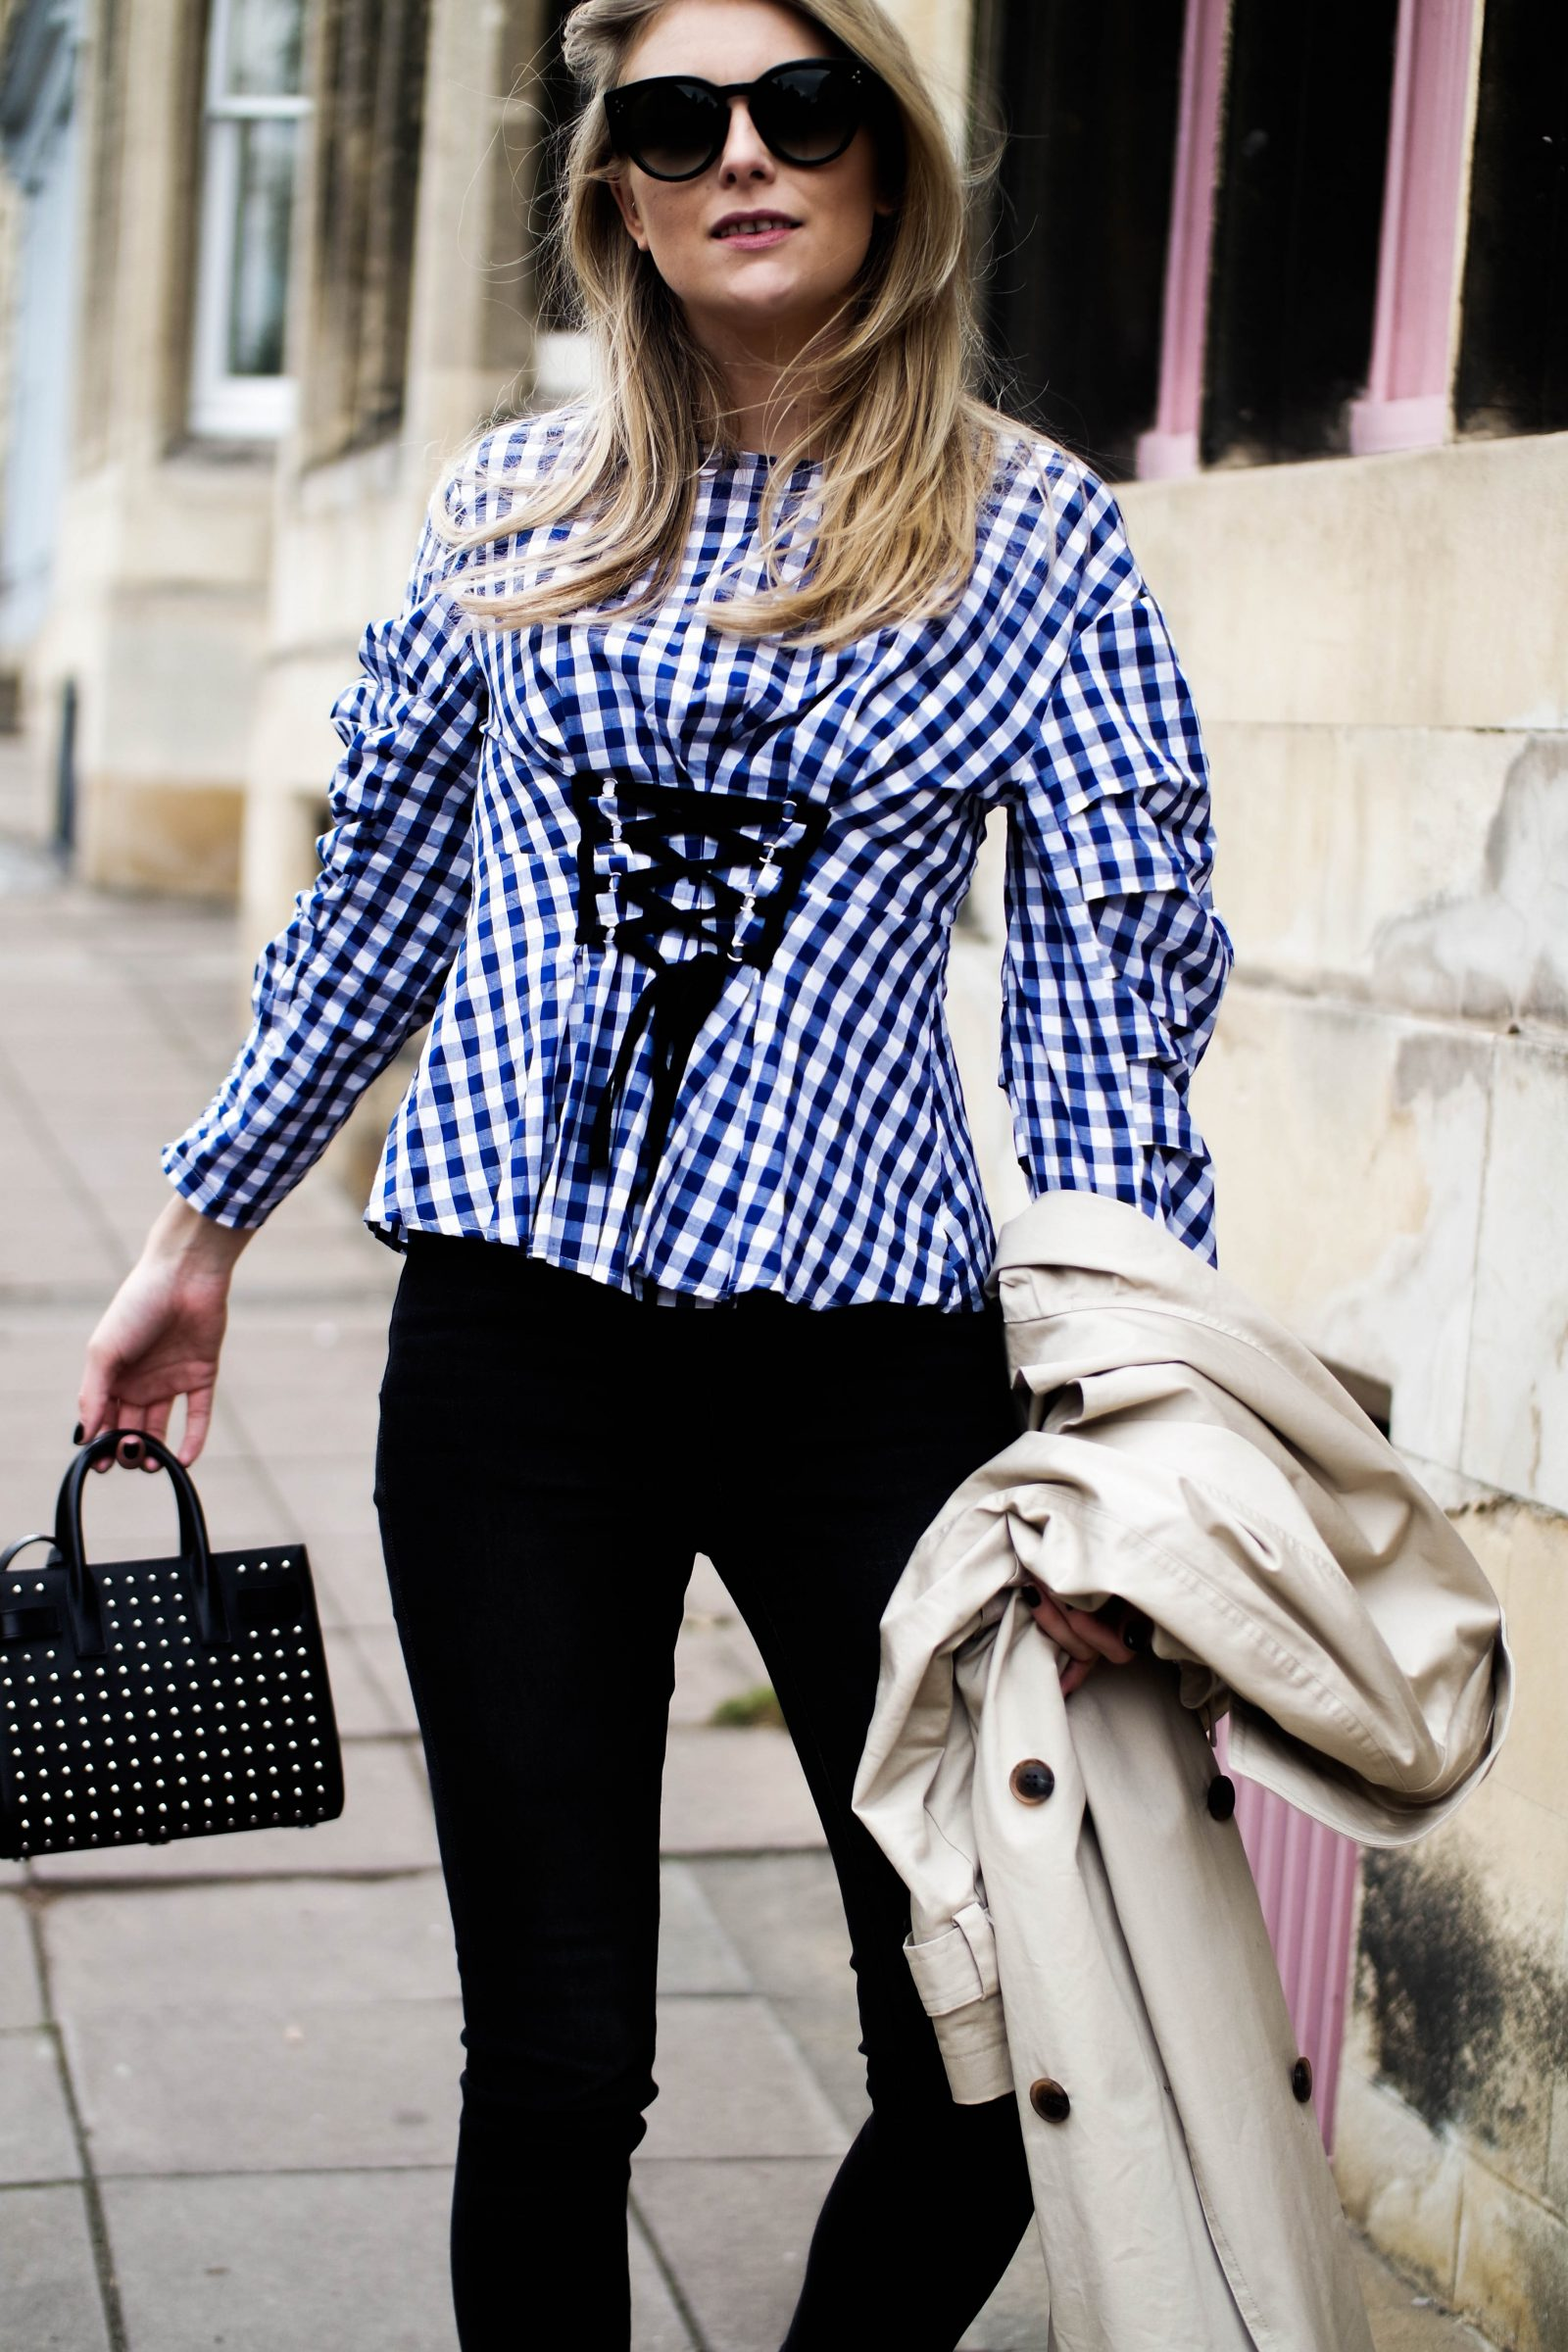 5 Ways To Wear The Corset Trend - Spring Statement Top